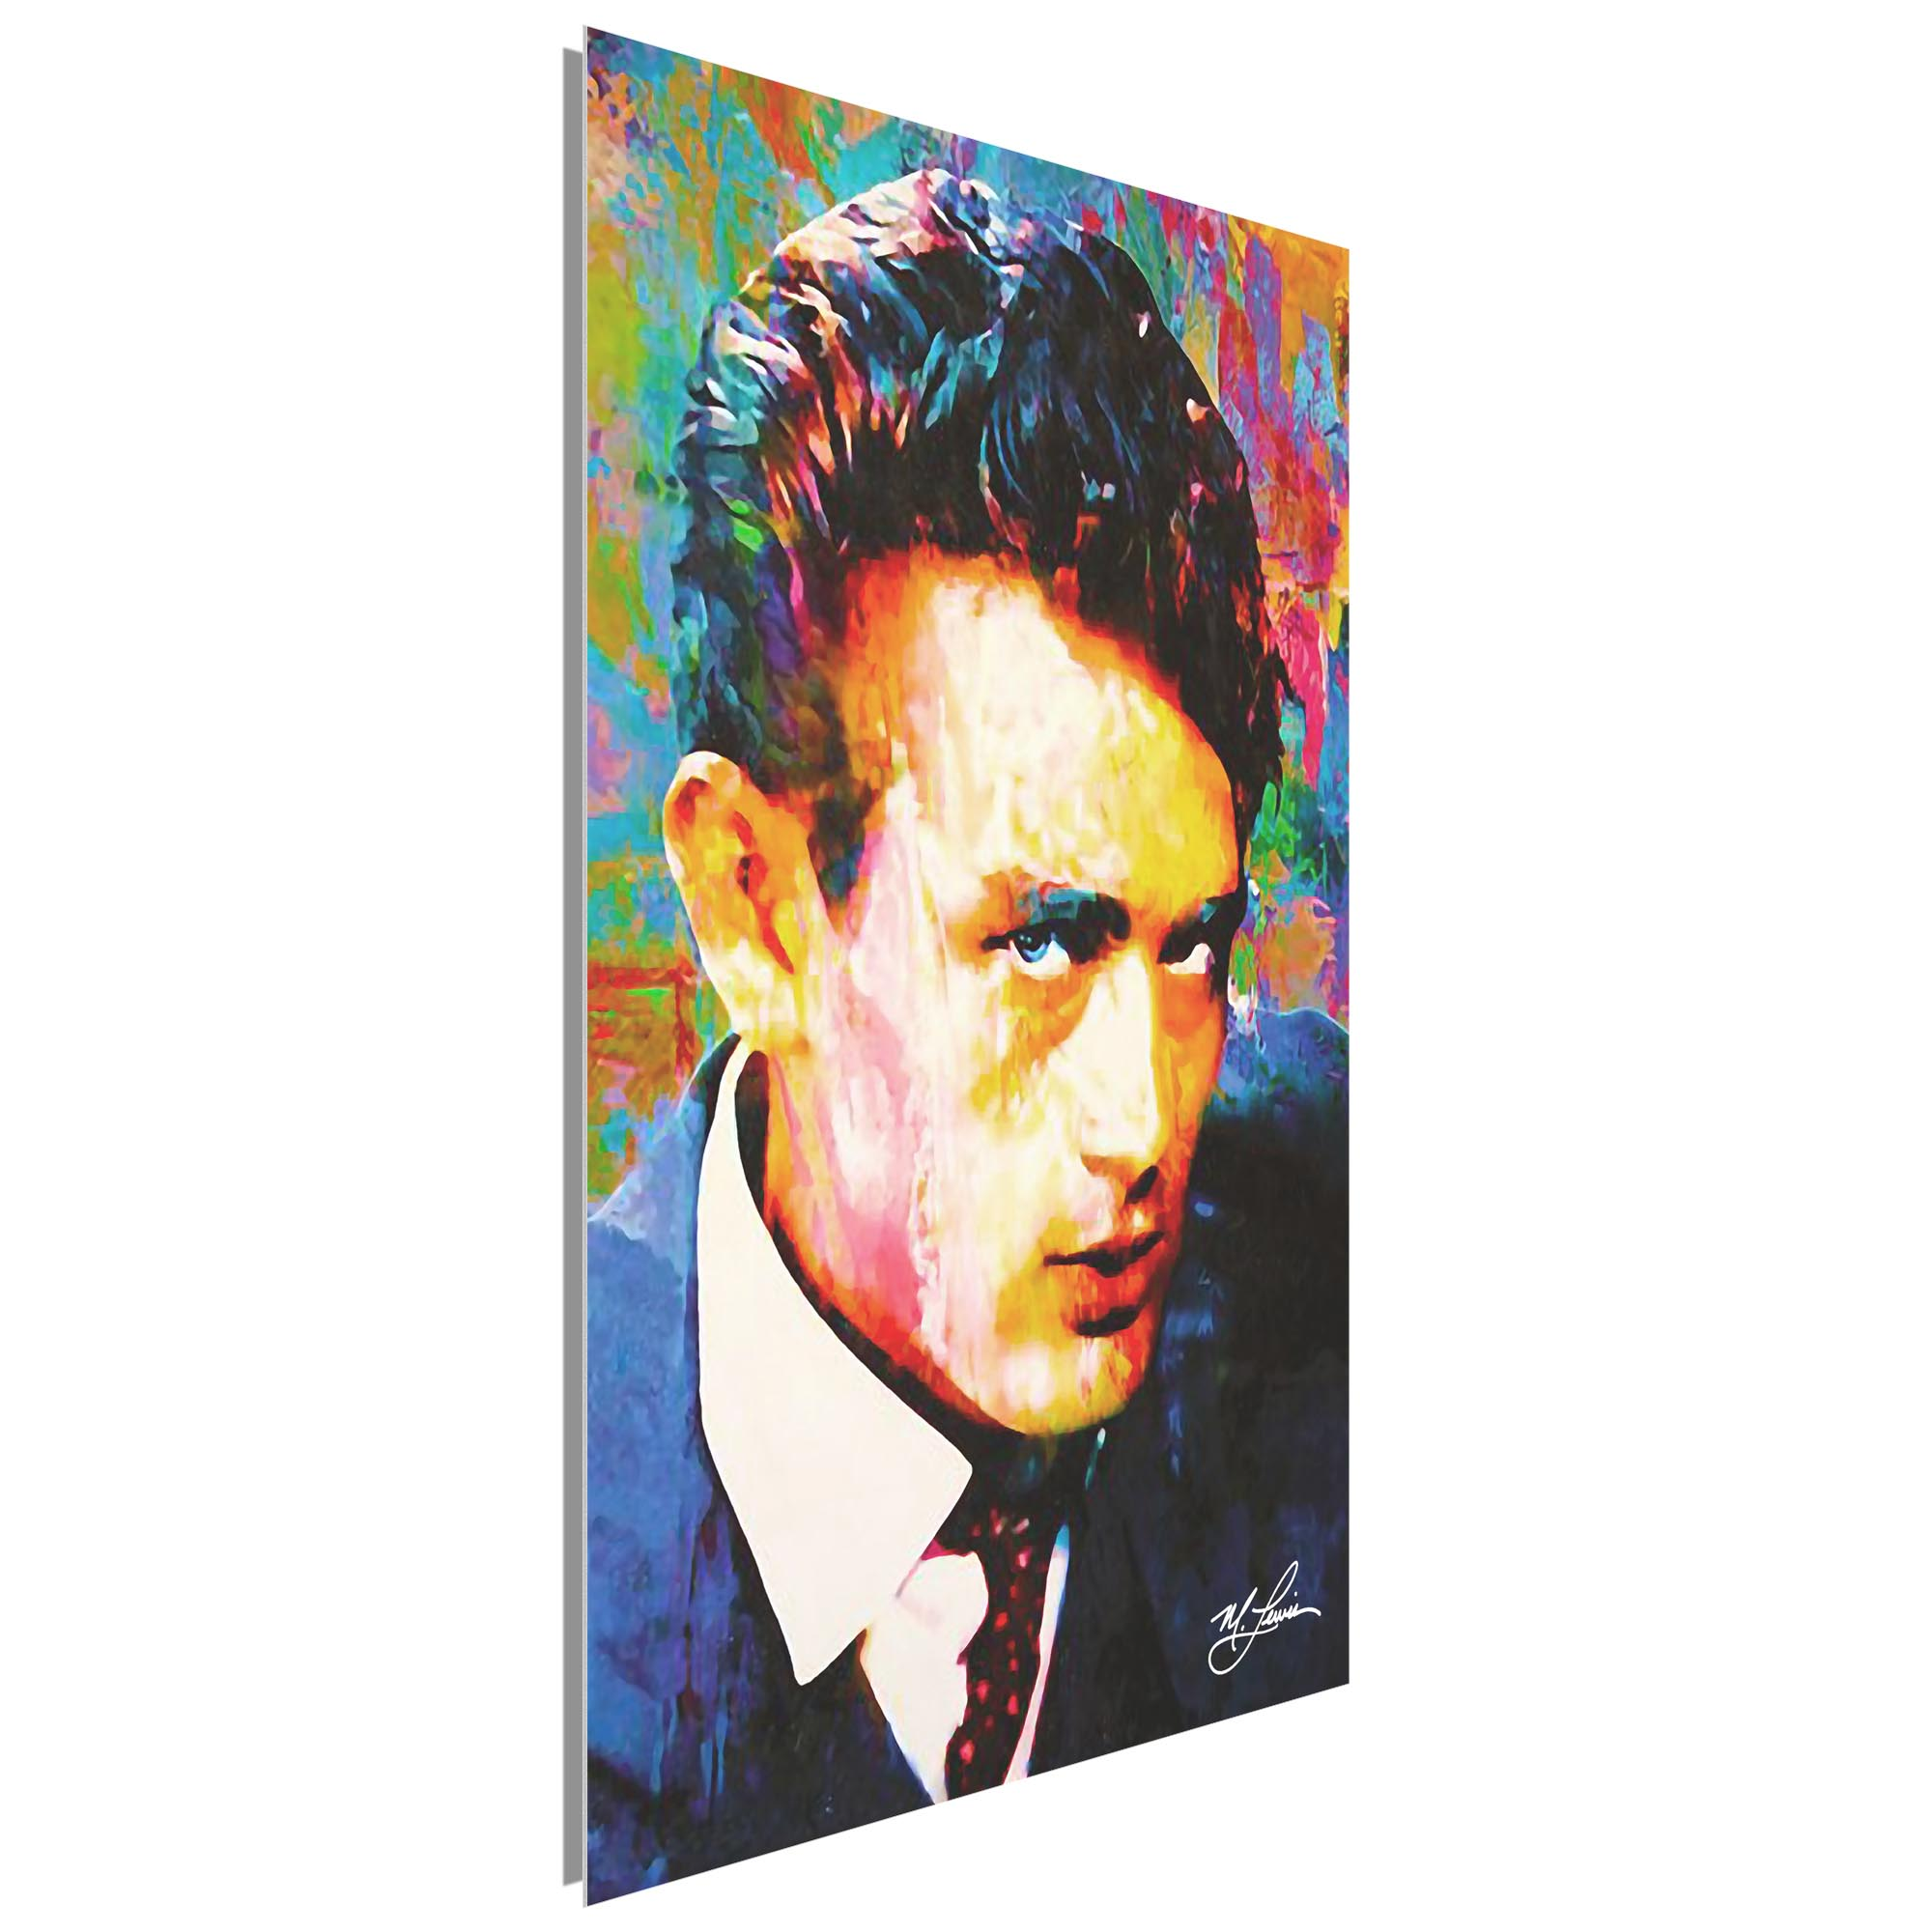 James Dean Lifes Significance 22x32 Metal or Plexiglass Pop Art Portrait - Image 2